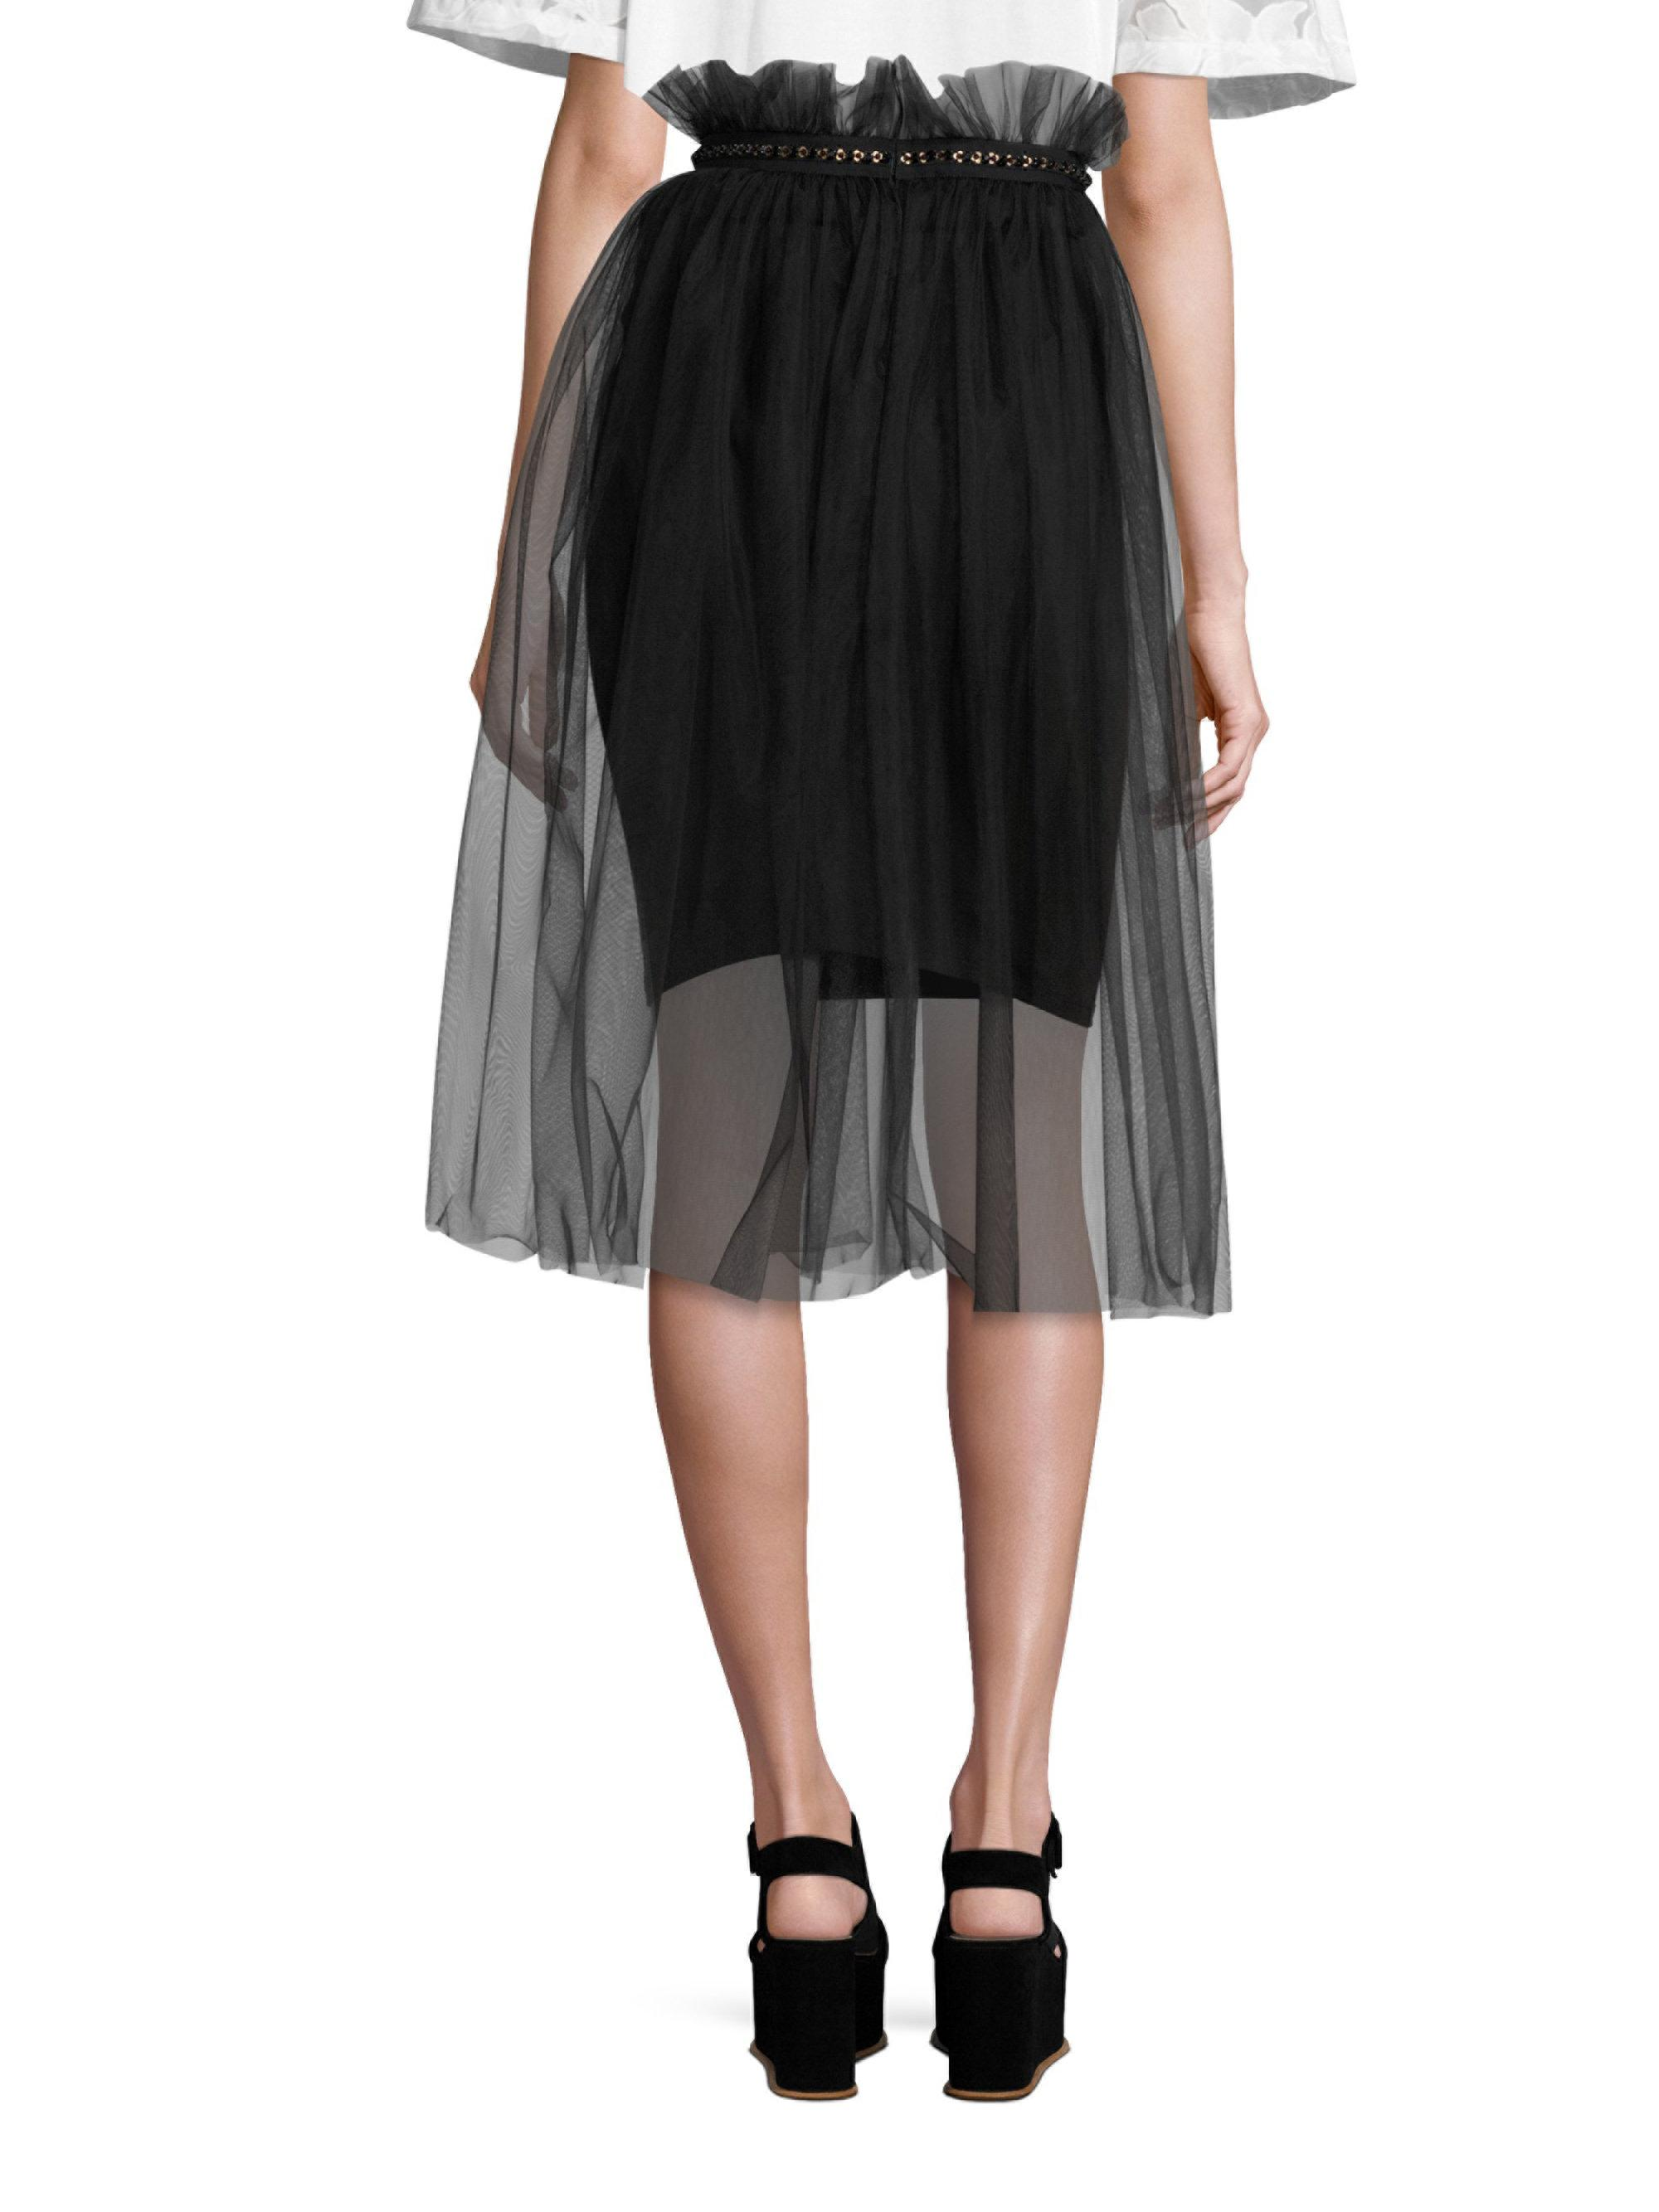 Mother Of Pearl Woman Delphia Embellished Tulle Midi Skirt Black Size 10 Mother Of Pearl Outlet 100% Authentic LbbHkZej